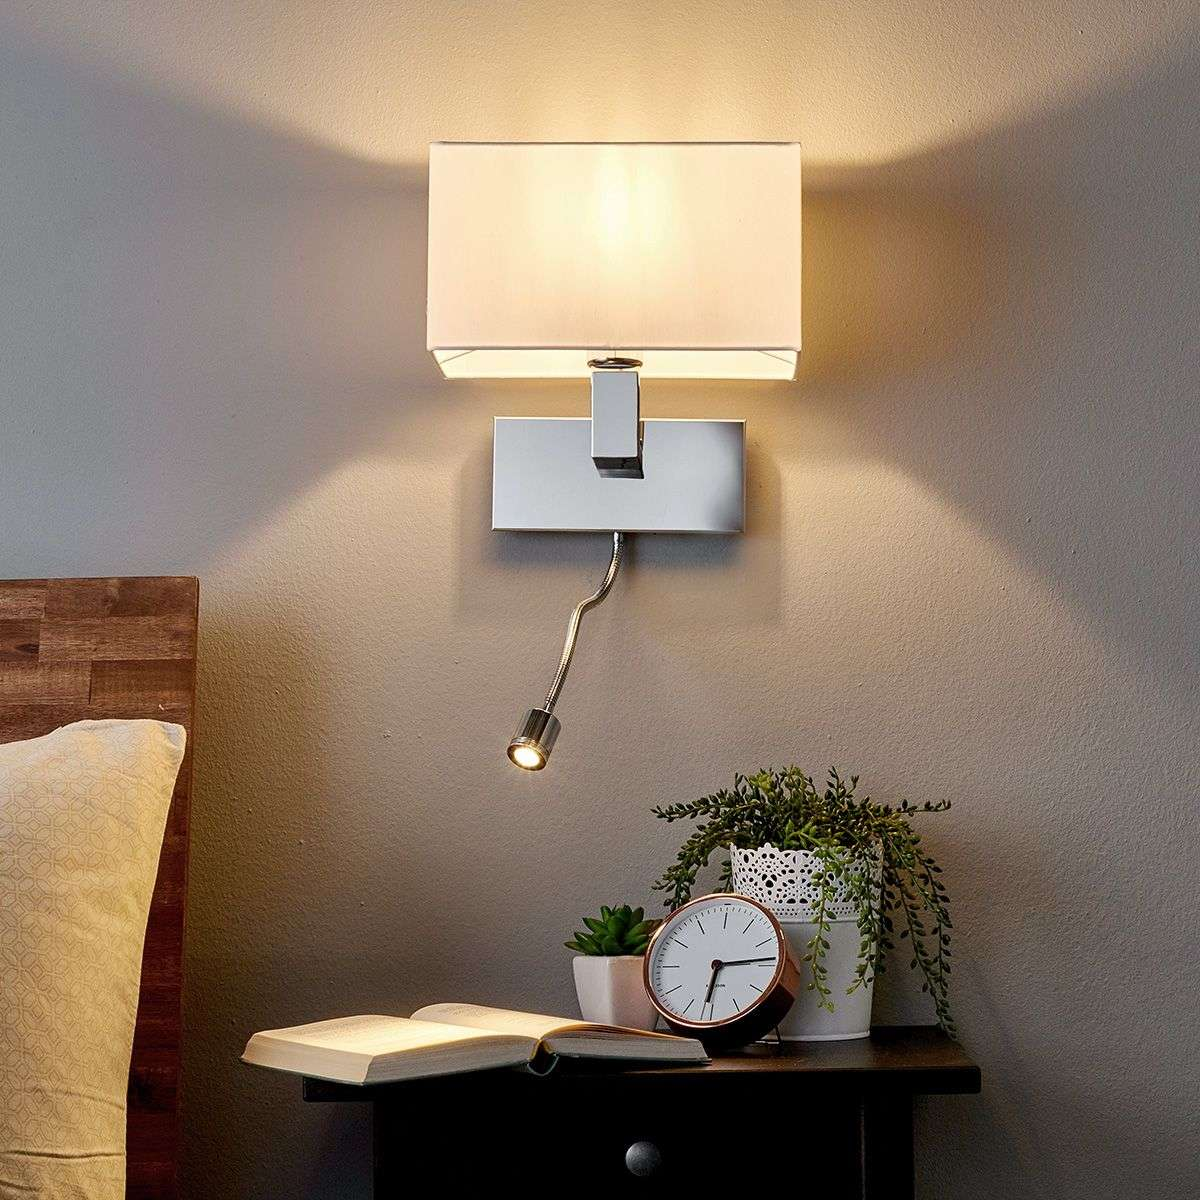 Wall Light Tamara With Fabric Shade, LED Flex Arm